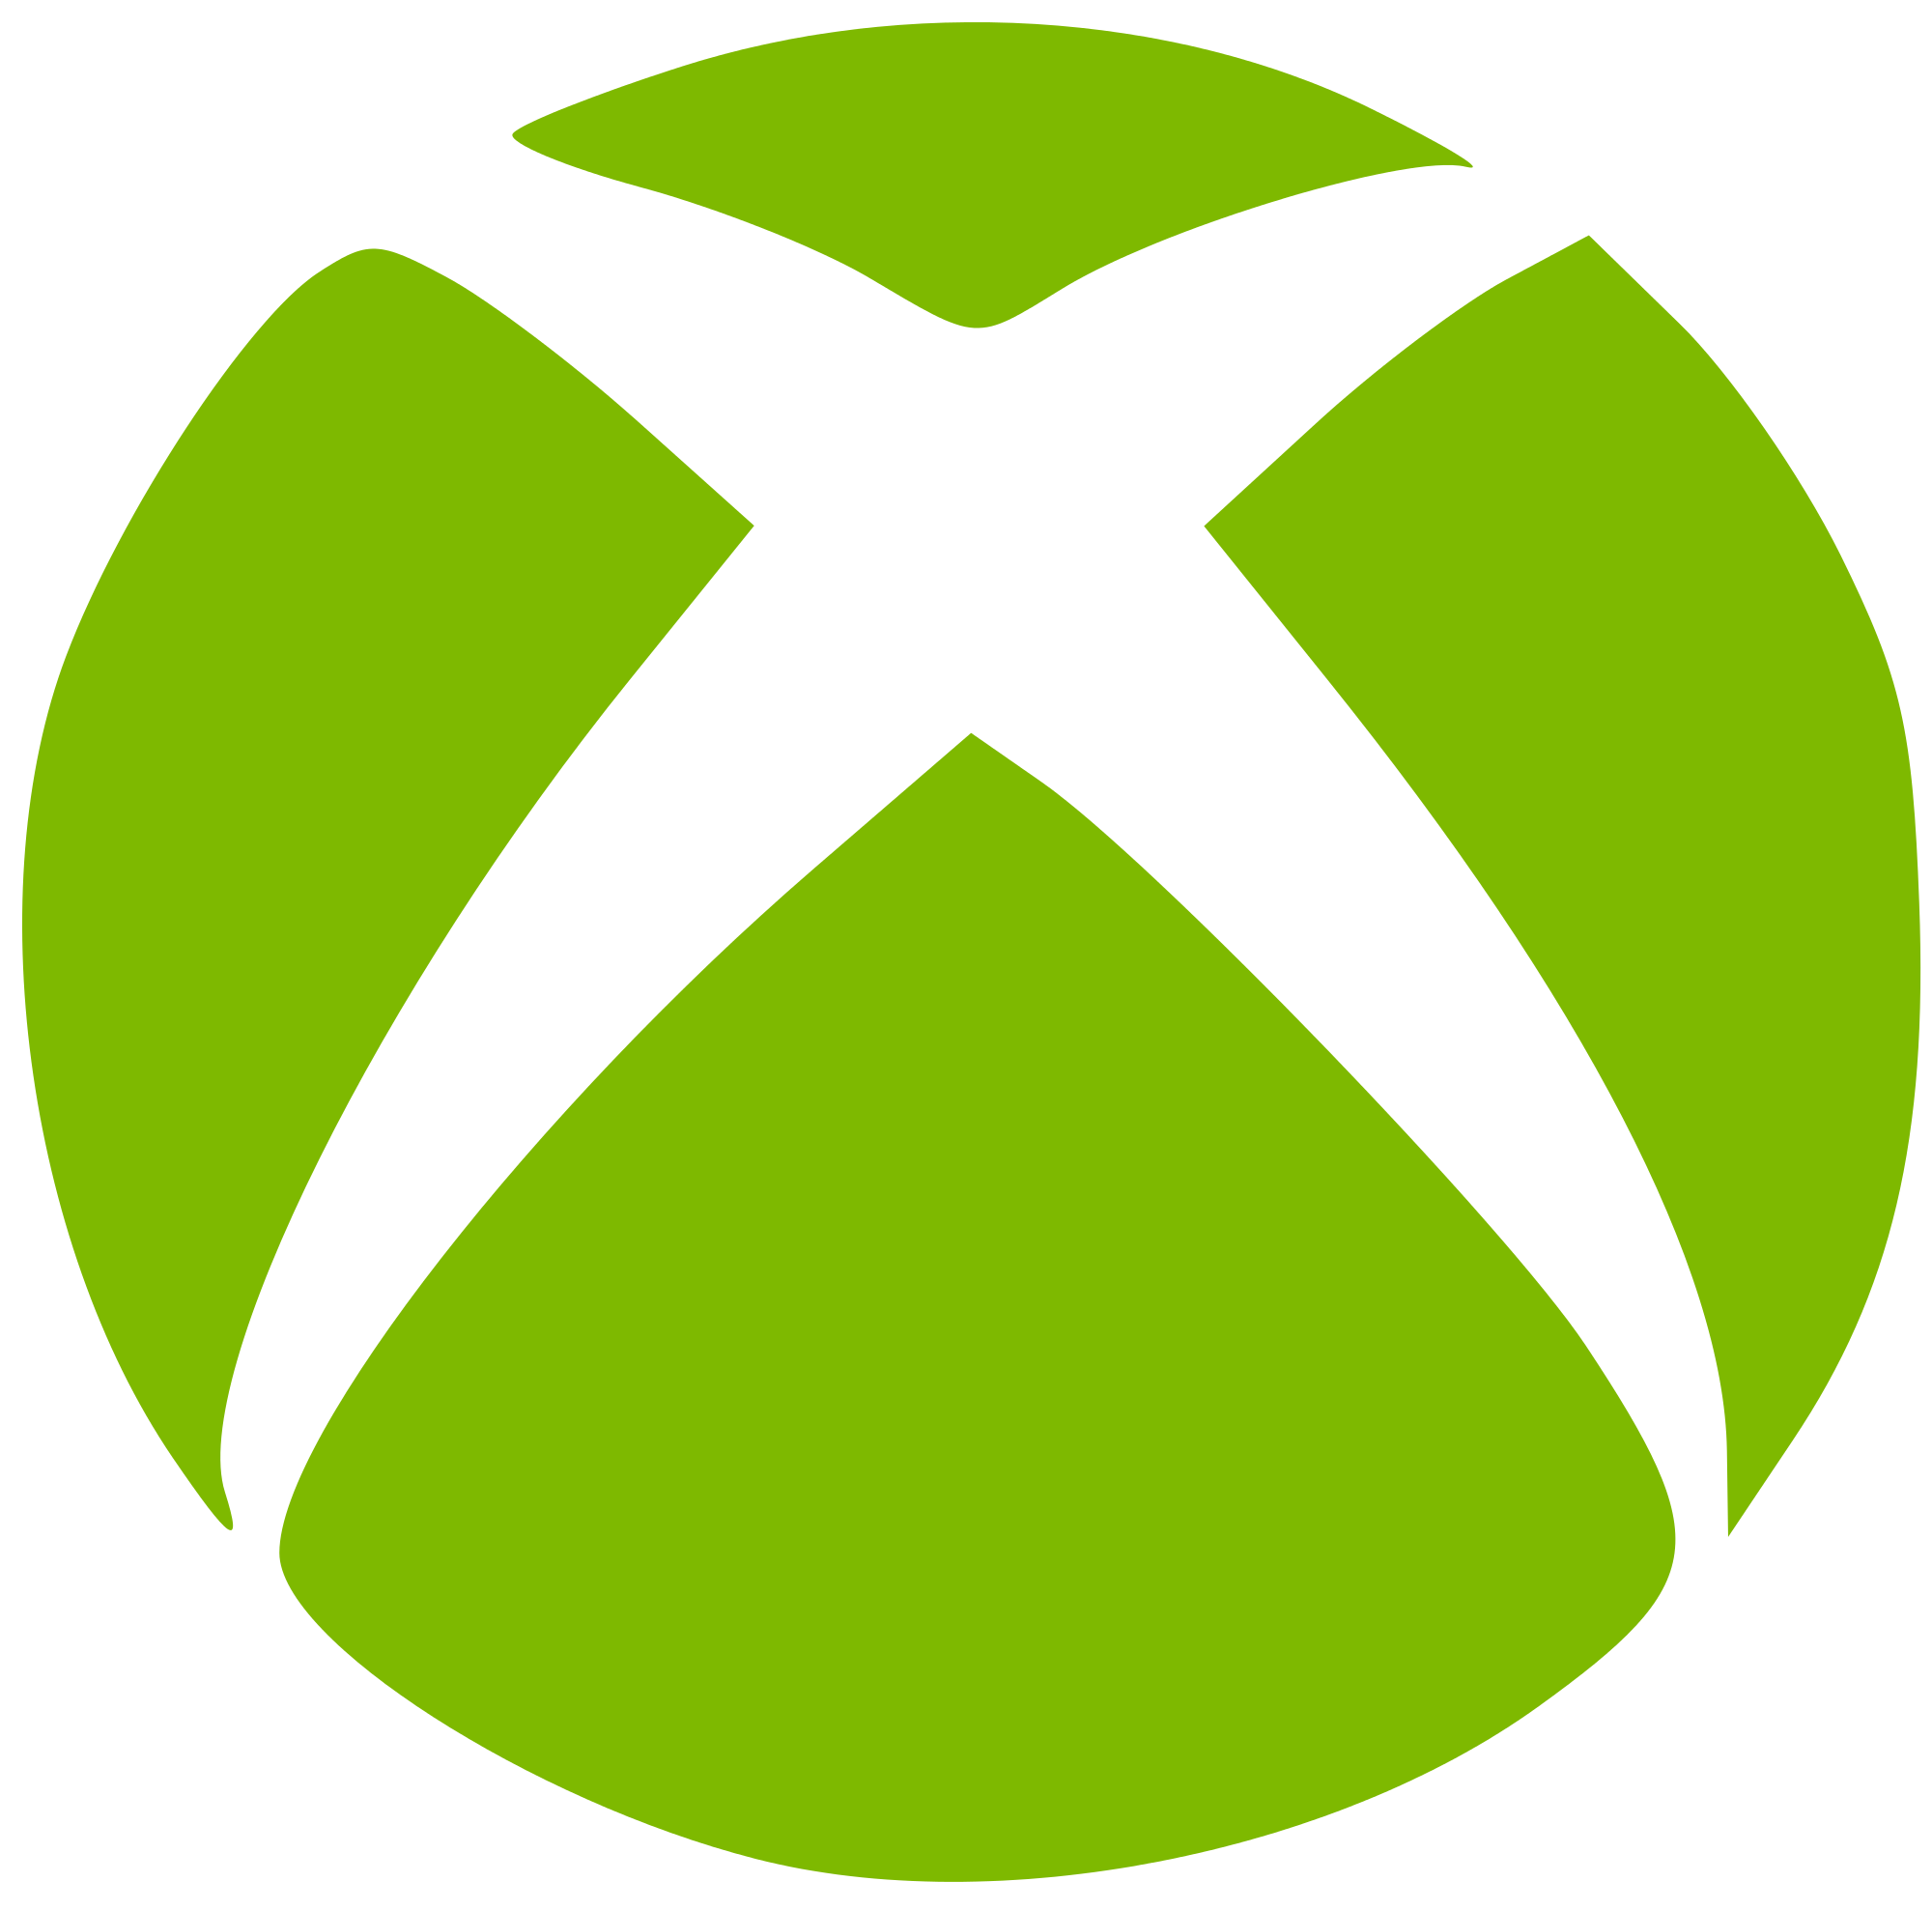 Xbox logo PNG - Xbox PNG